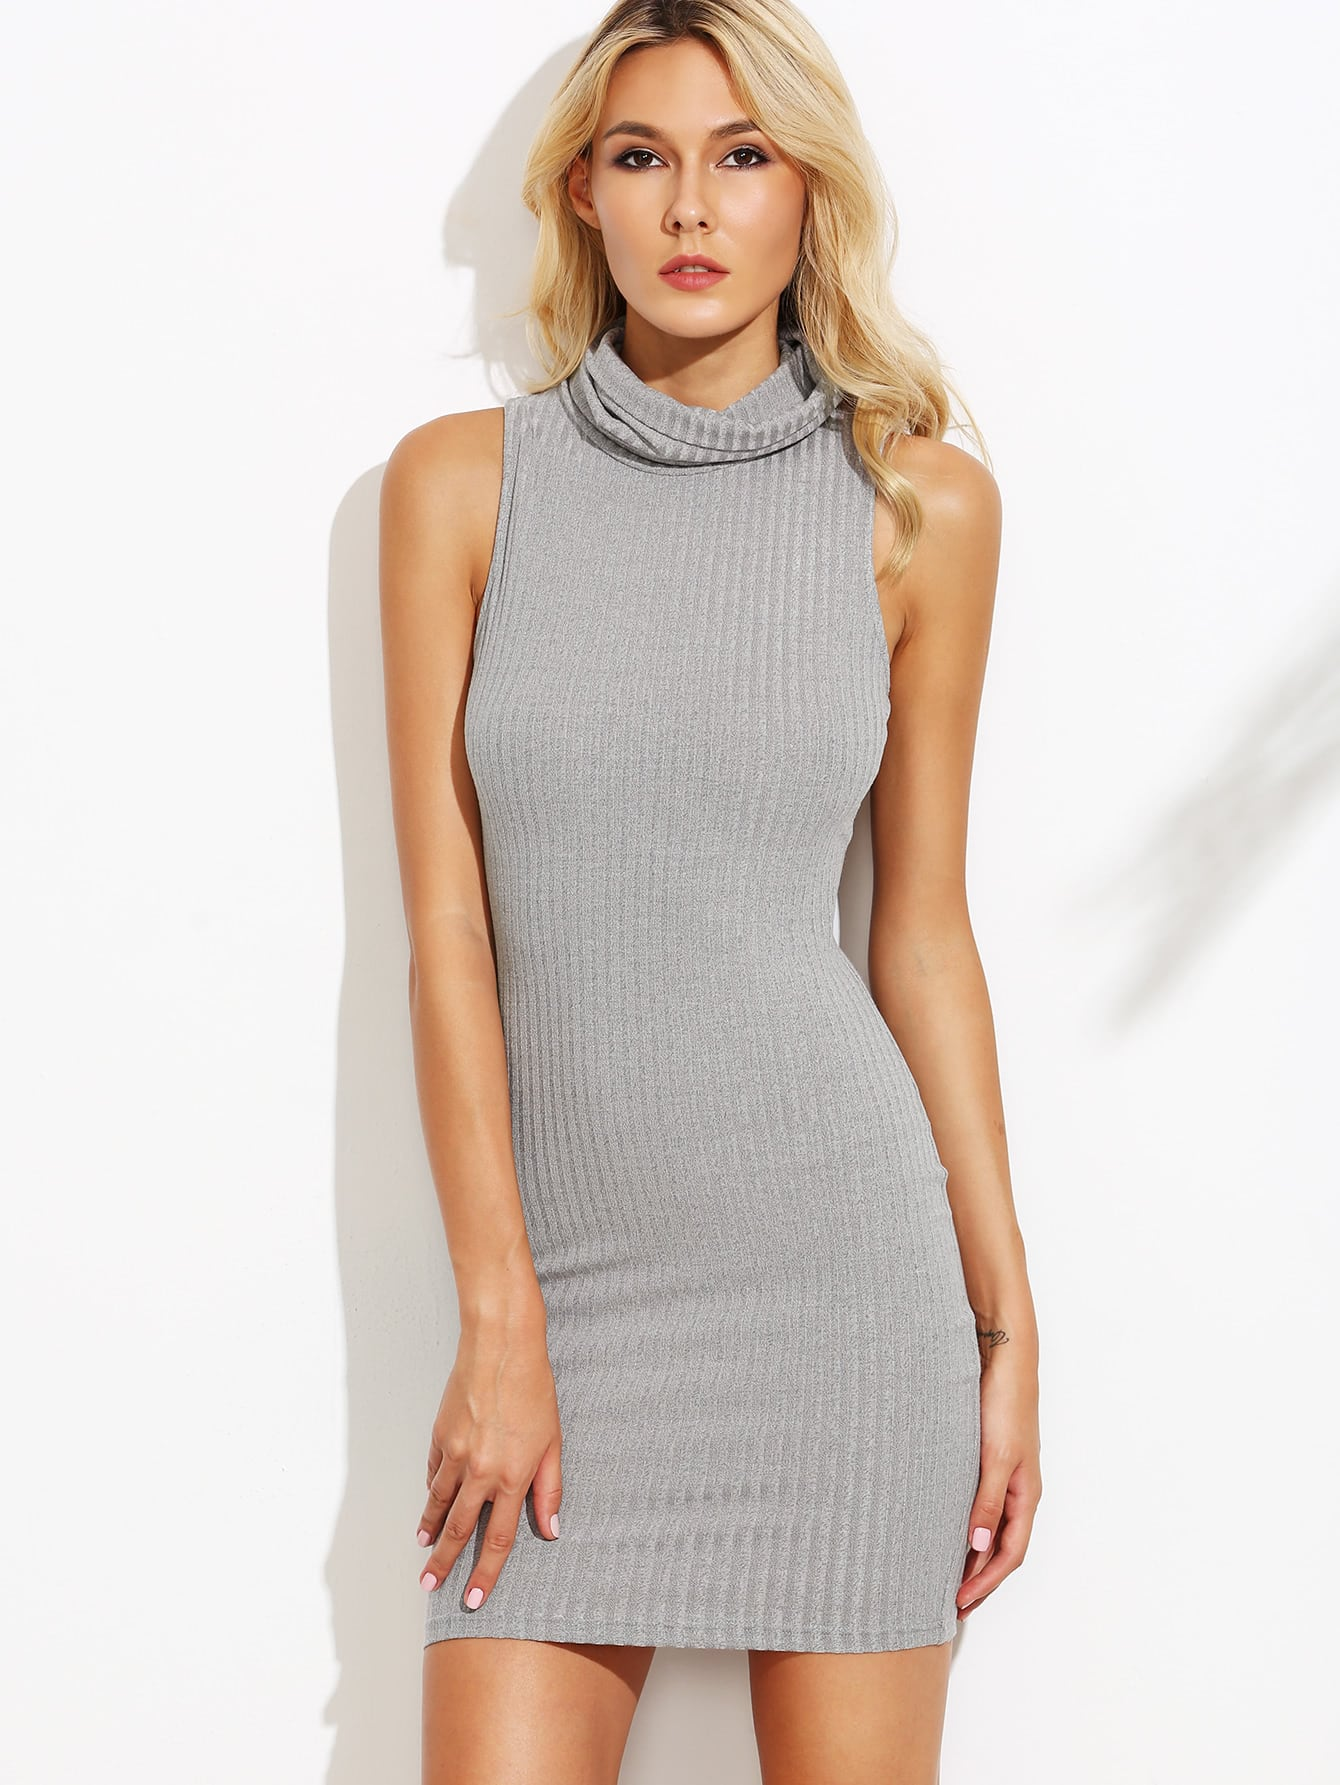 Cowl Neck Ribbed Knit Fitted Dress dress160816702